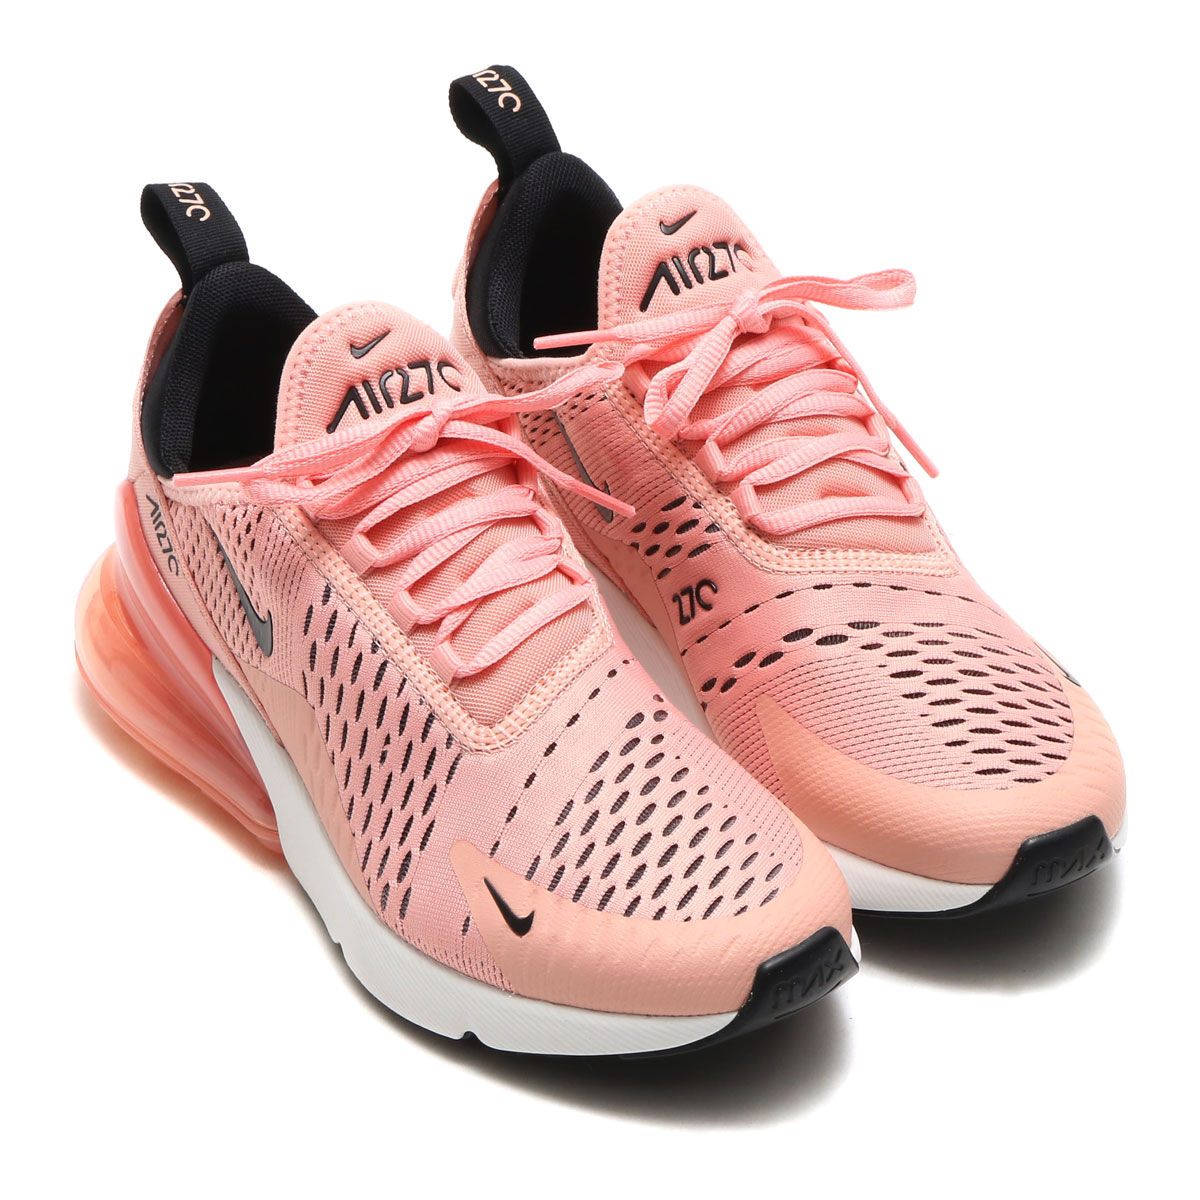 super popular 484ab 76ee9 Nike Air Max 270 Shoes for women shoes *Lucky 7 store